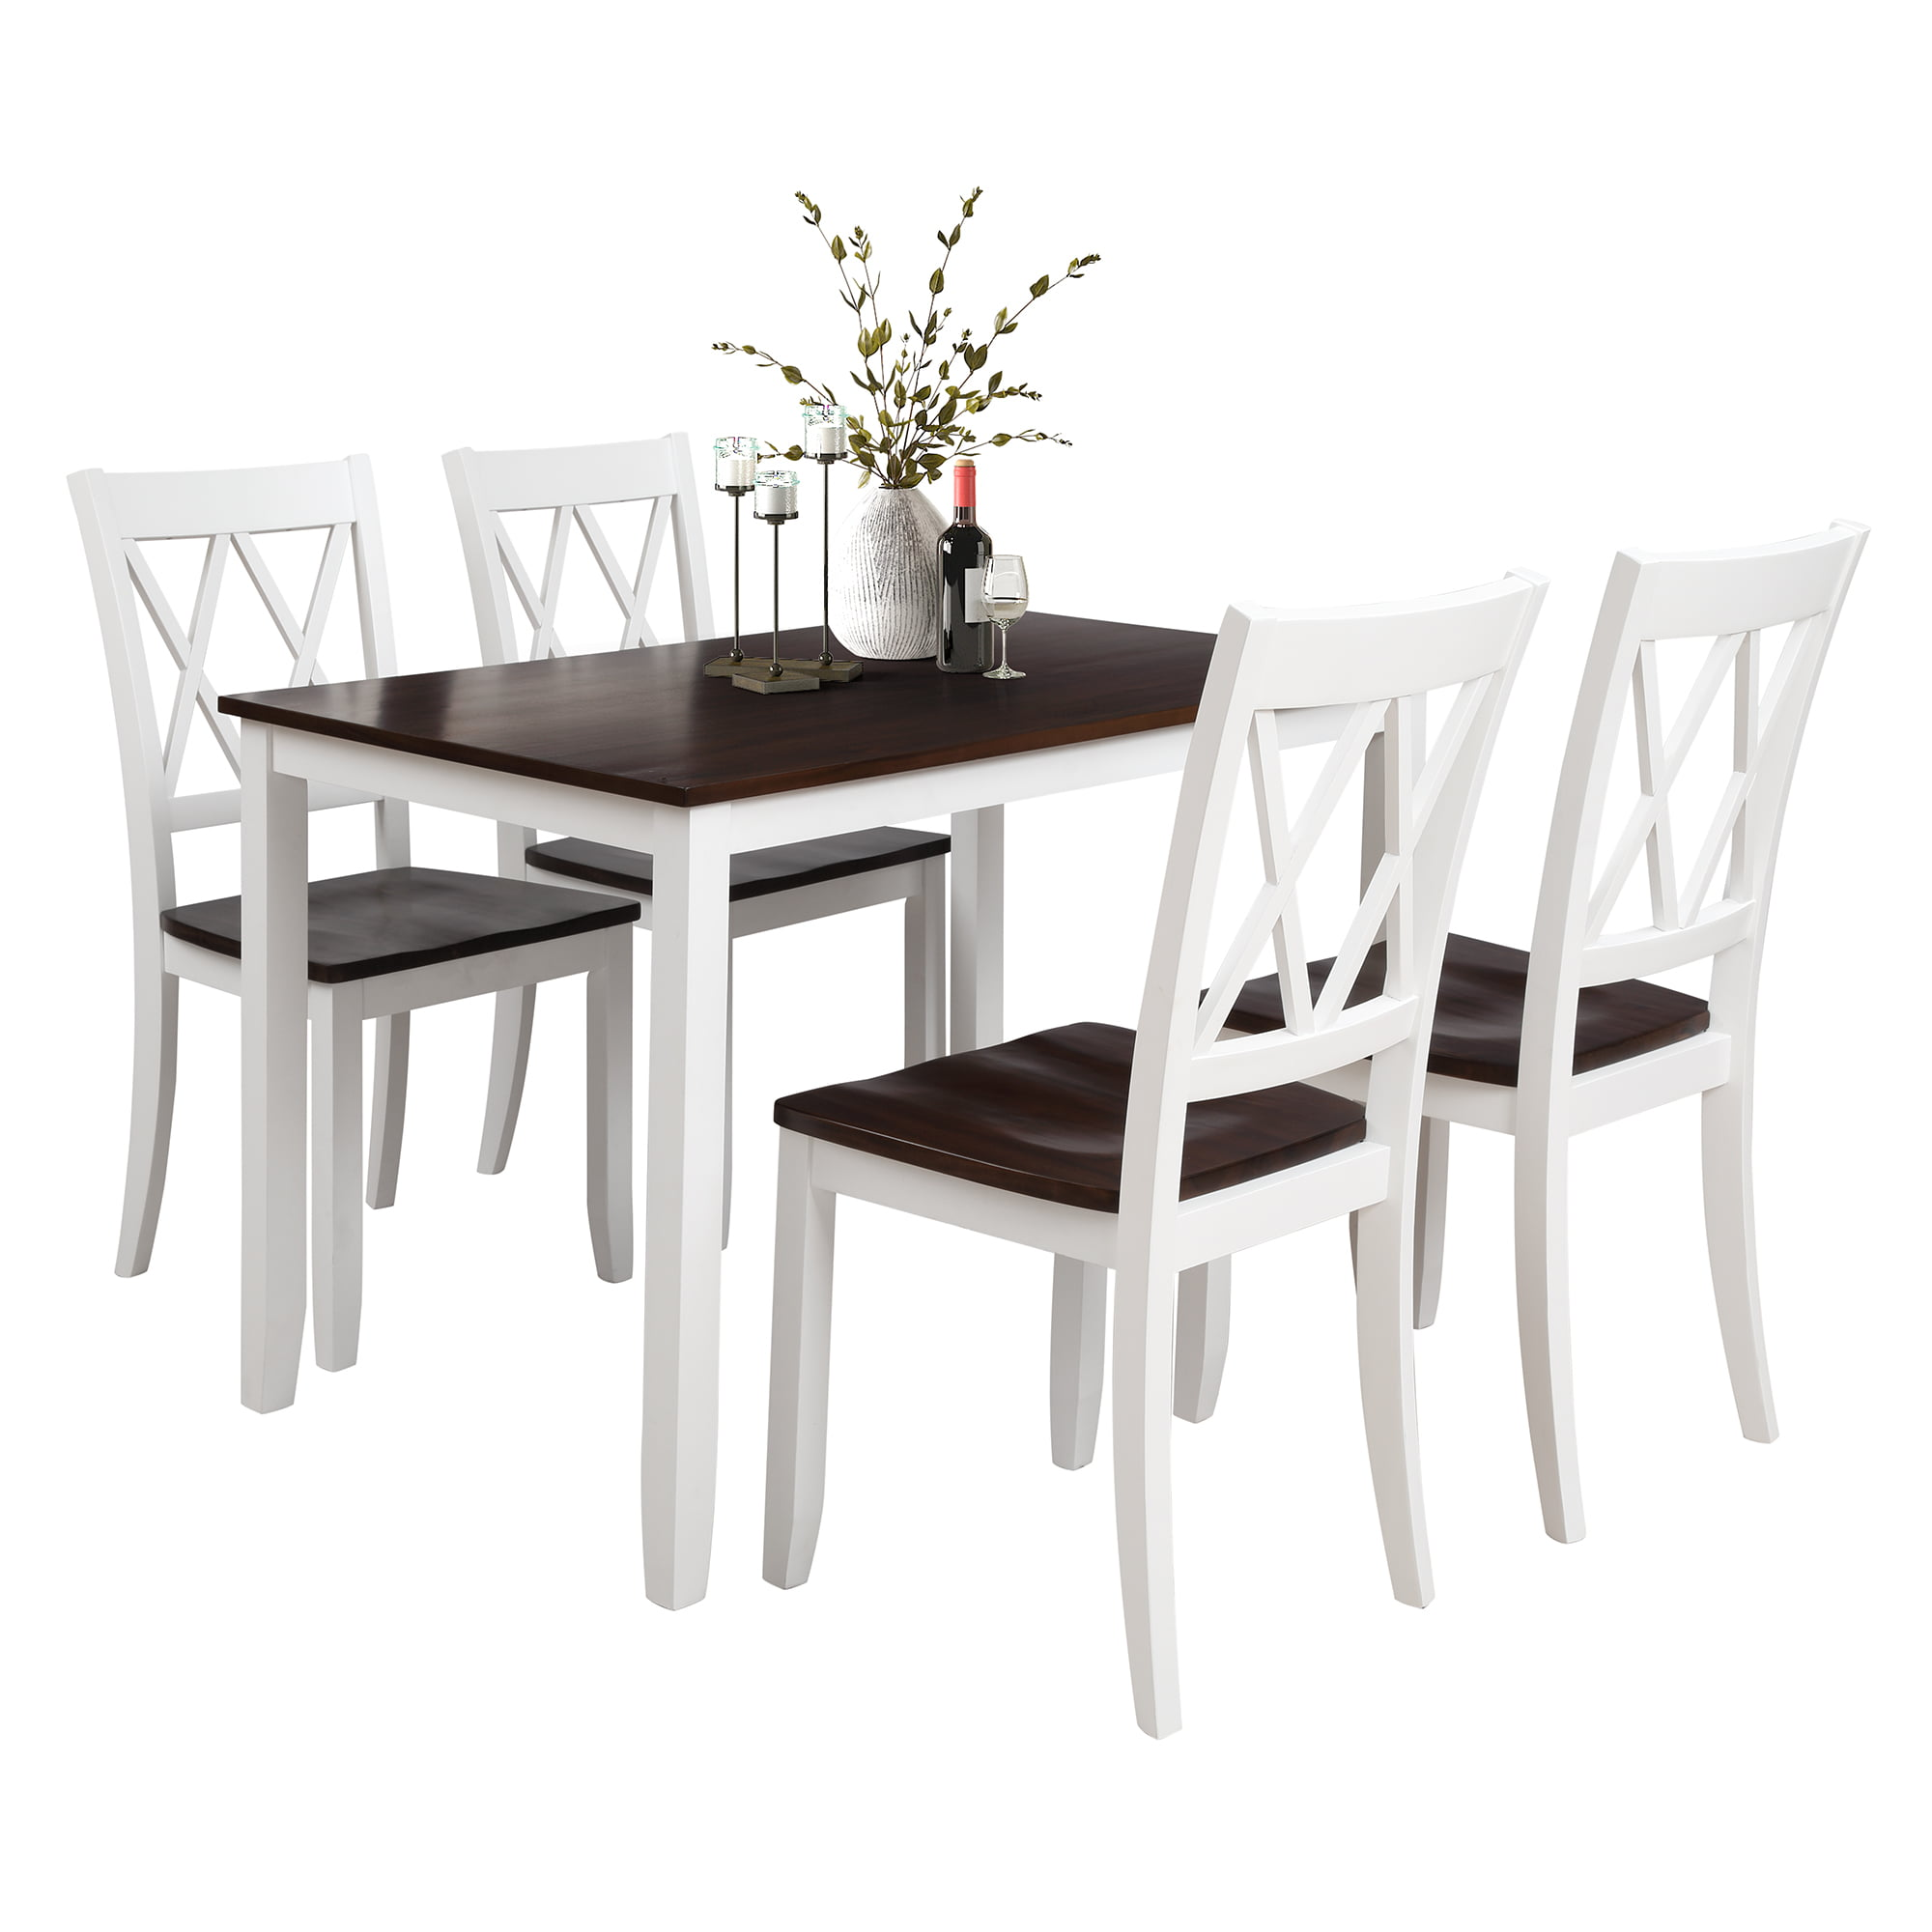 5 piece dining room table set modern dining table sets